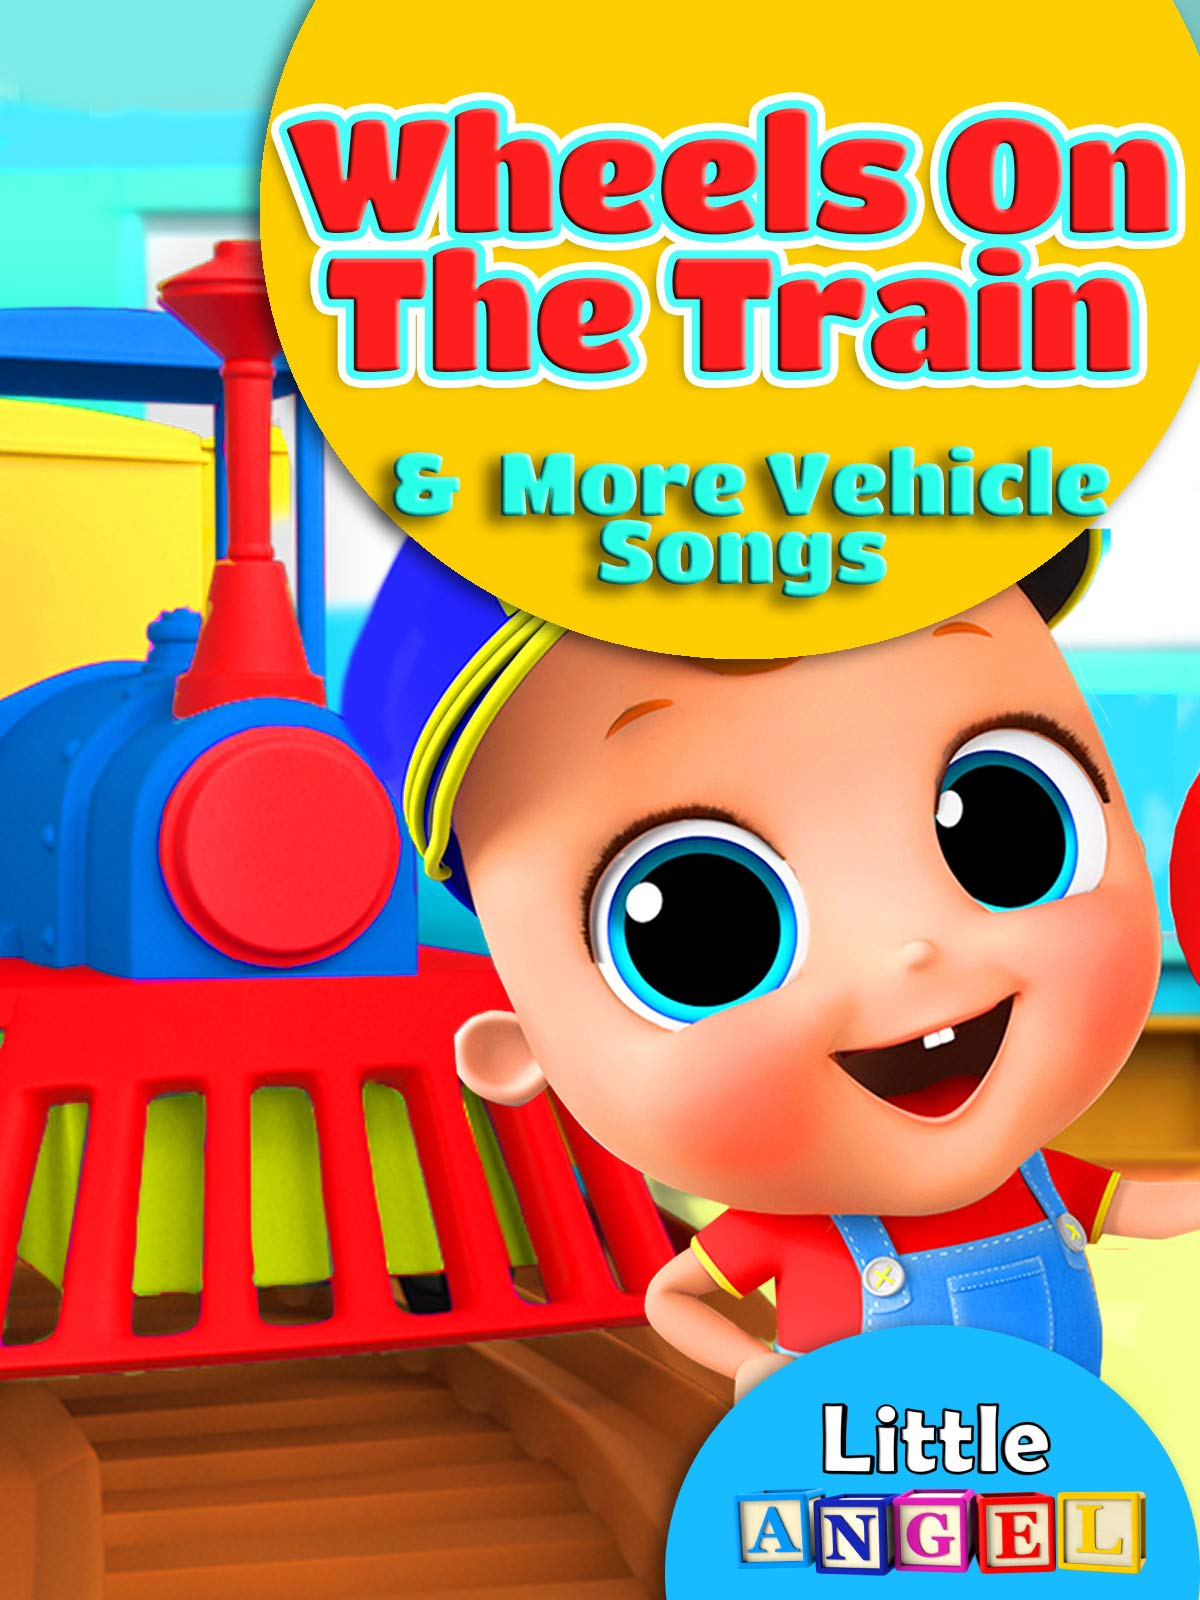 Wheels On The Train And More Vehicle Songs on Amazon Prime Video UK